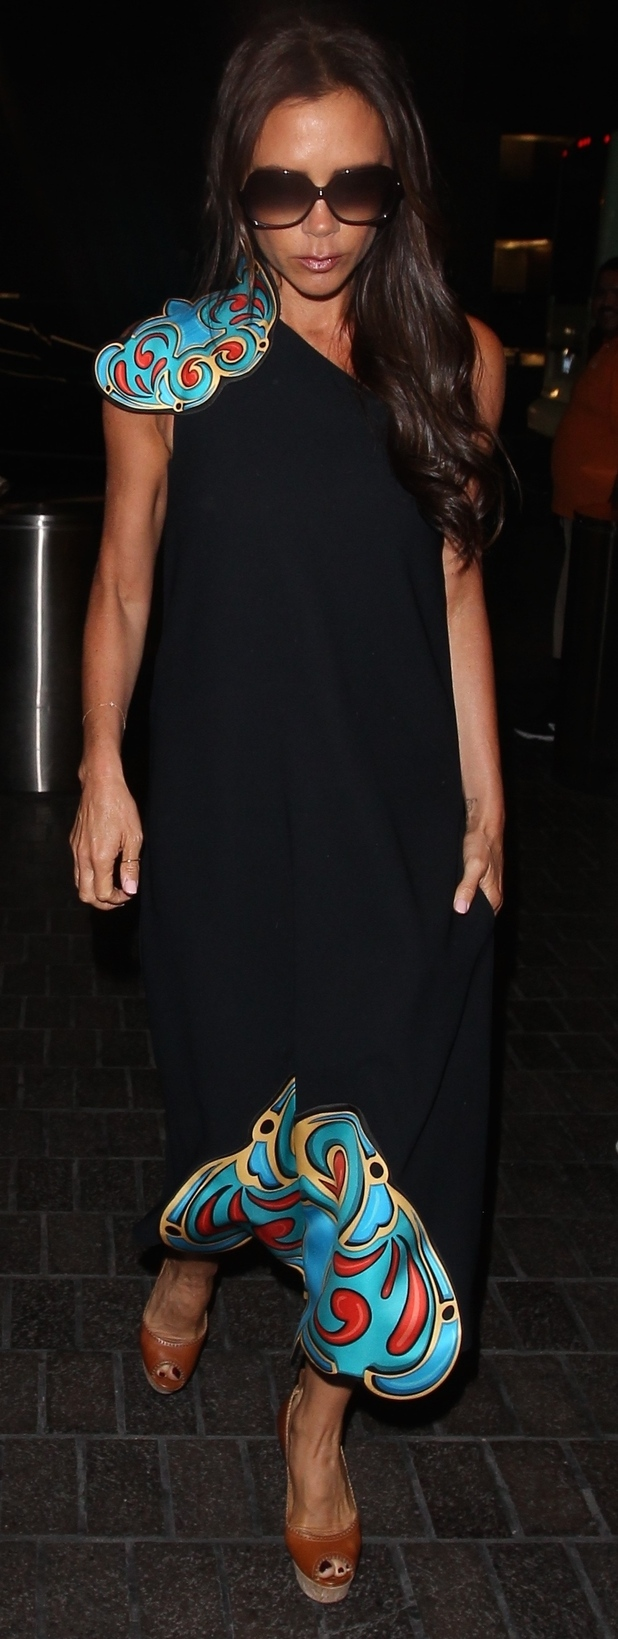 Victoria Beckham wears dress from her own collection at L.A.X Airport, 3rd August 2015